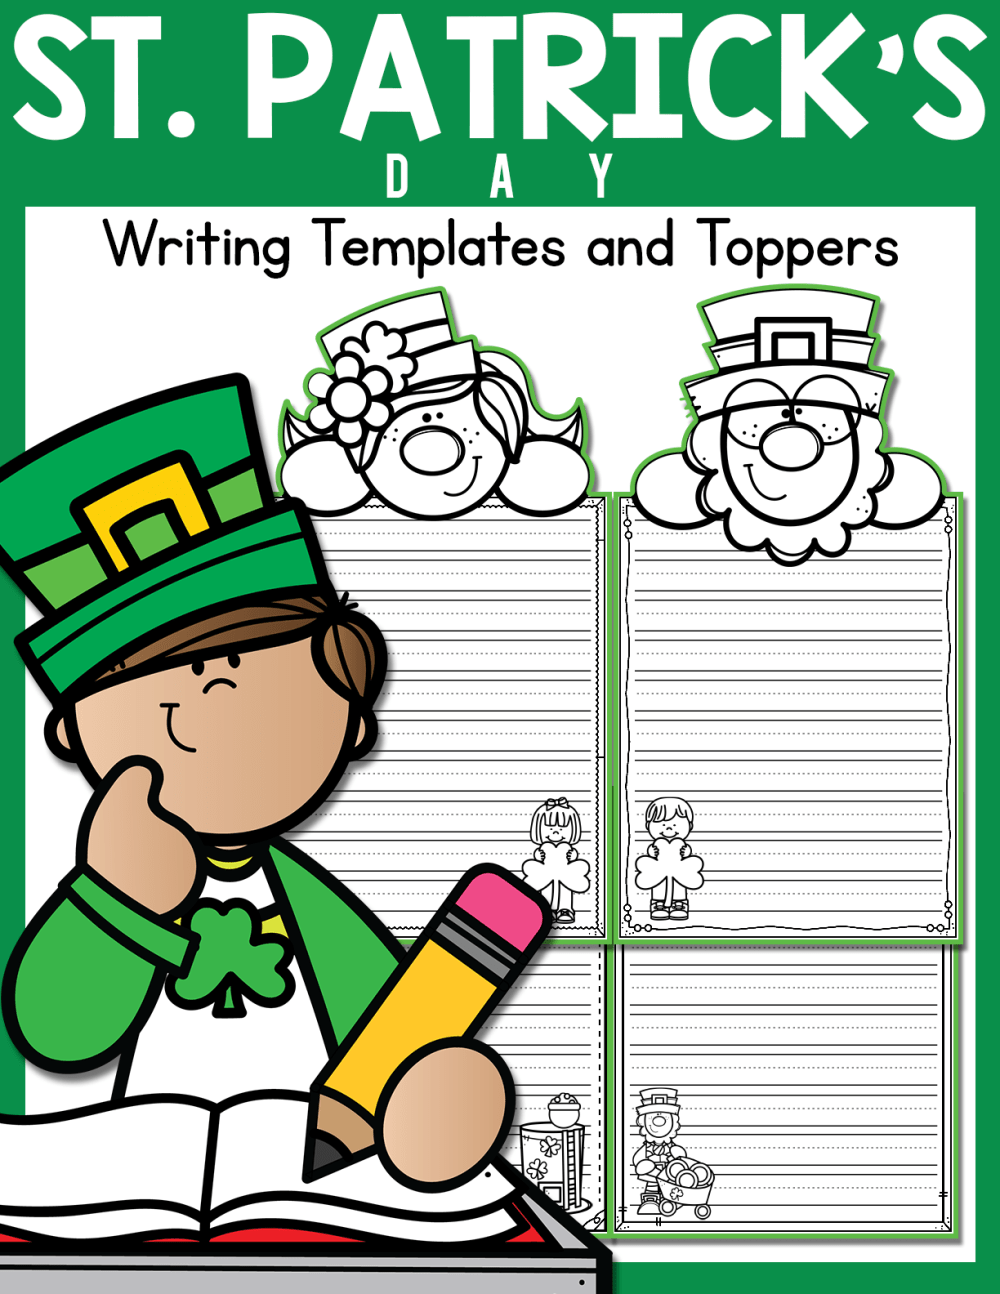 medium resolution of St. Patrick's Day Writing Templates and Toppers - Made By Teachers